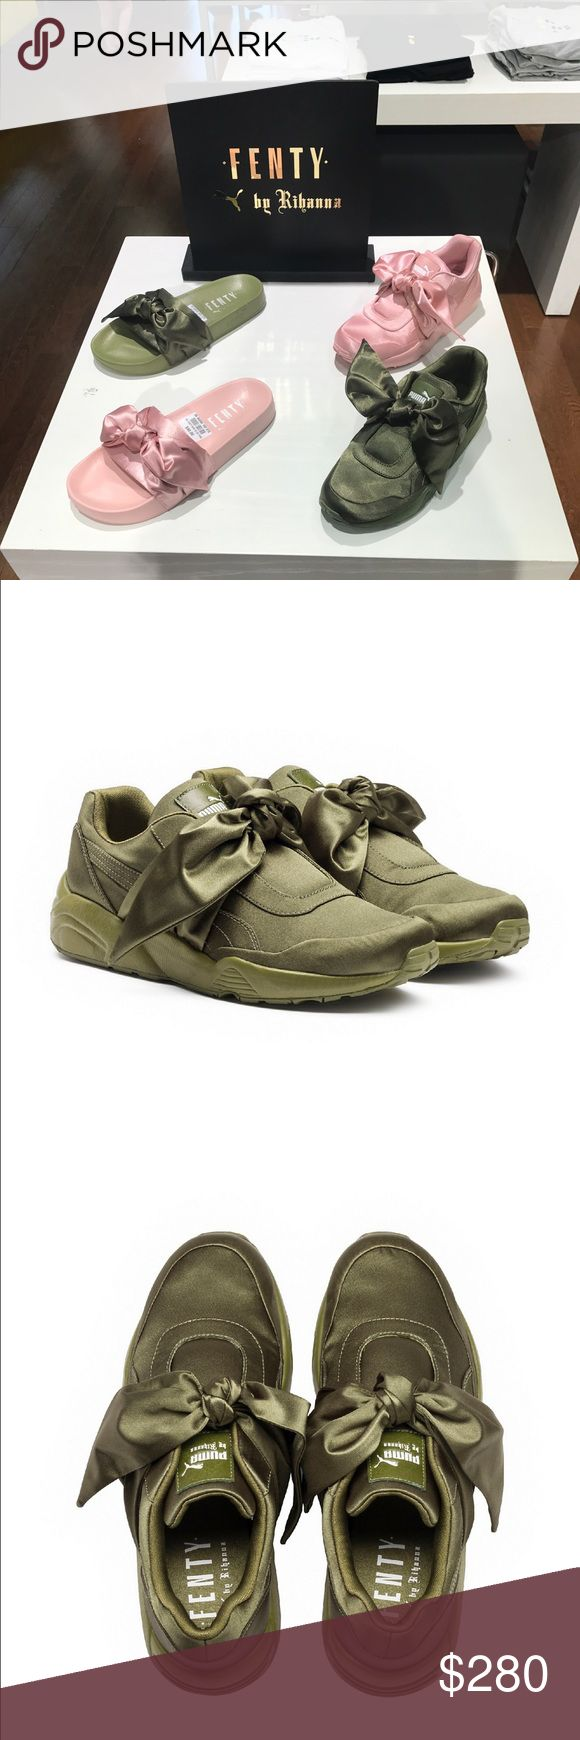 Authentic Rihanna Fenty Puma Purchased 3/9 Receipt availableAll over satin upper with a tonal outsole, the sneaker features a delicate satin bow and the PUMA by Rihanna signature tongue patch. Features All over satin upper PUMA by Rihanna sign off patch FENTY PUMA by Rihanna on footbed Puma Shoes Sneakers